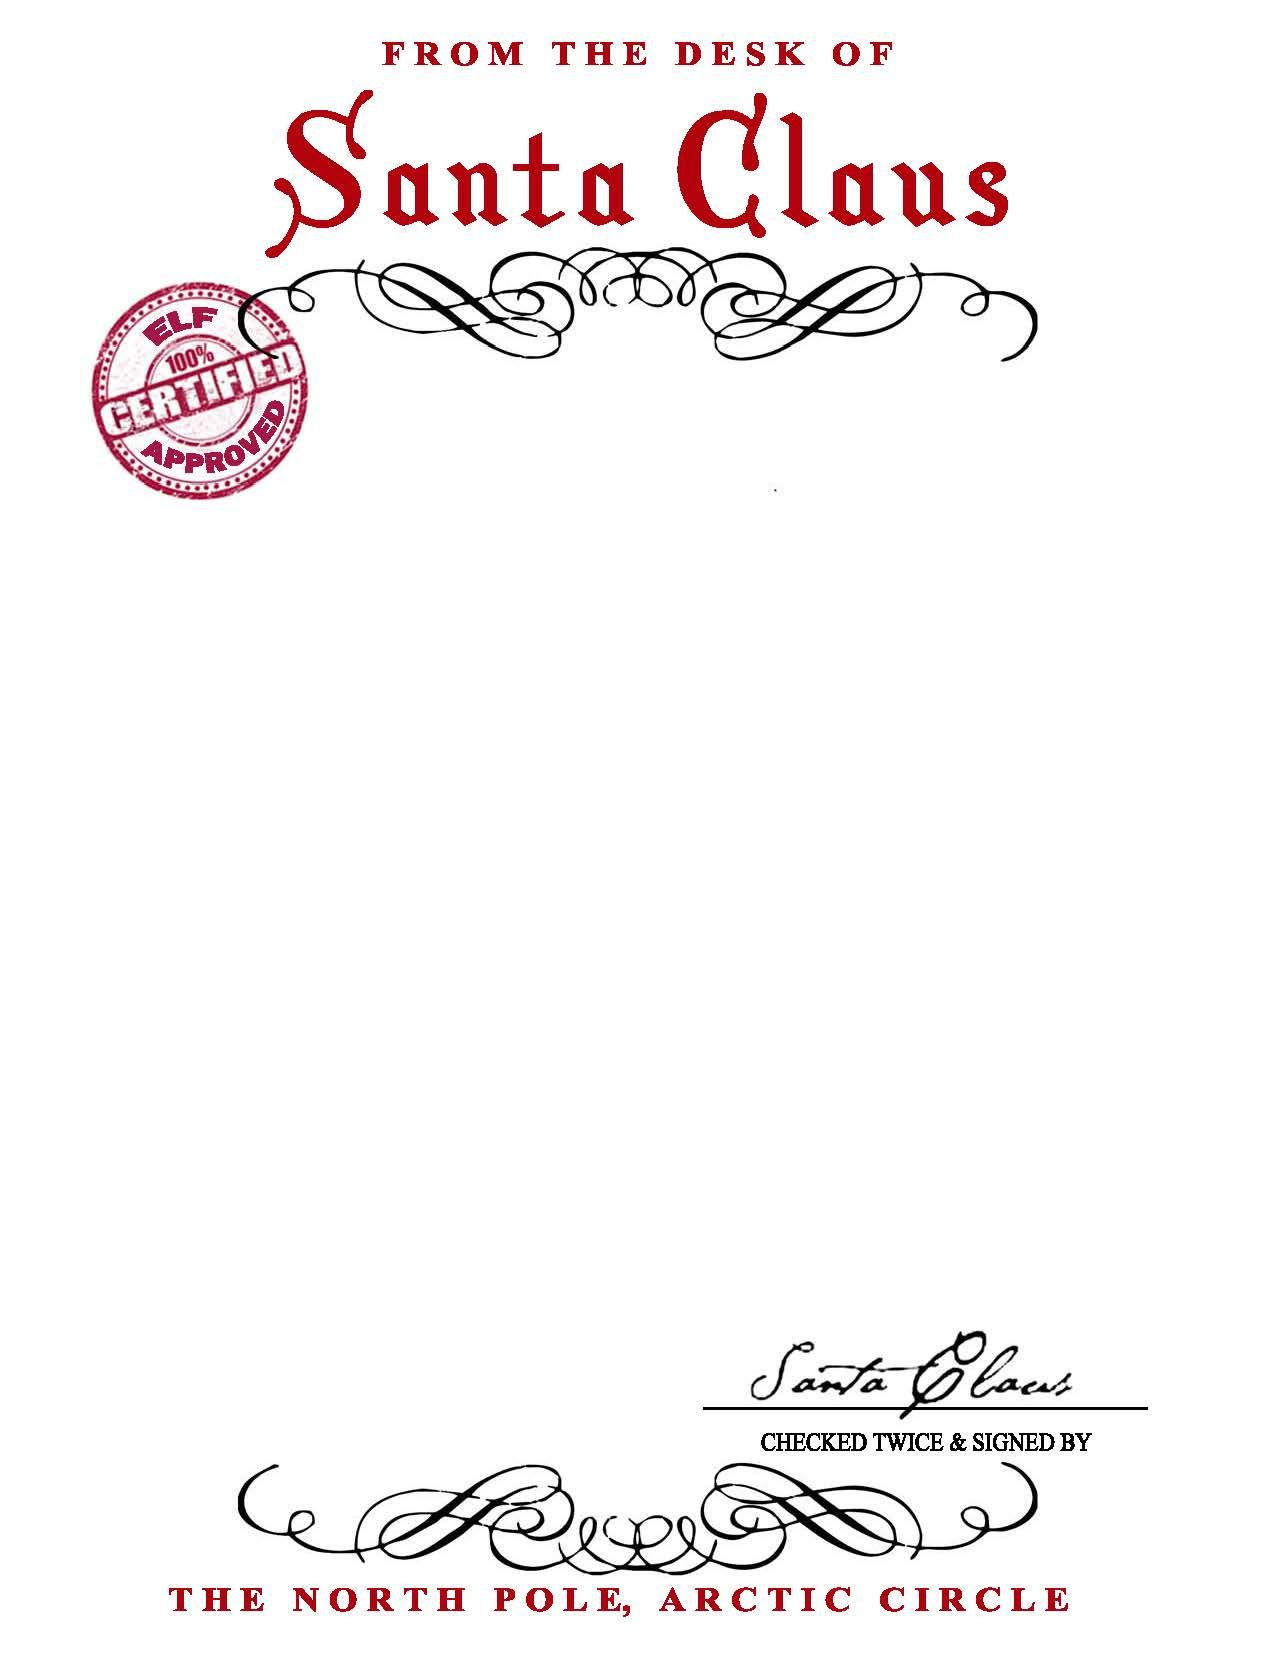 santa claus letterhead will bring lots of joy to children santa letter printable